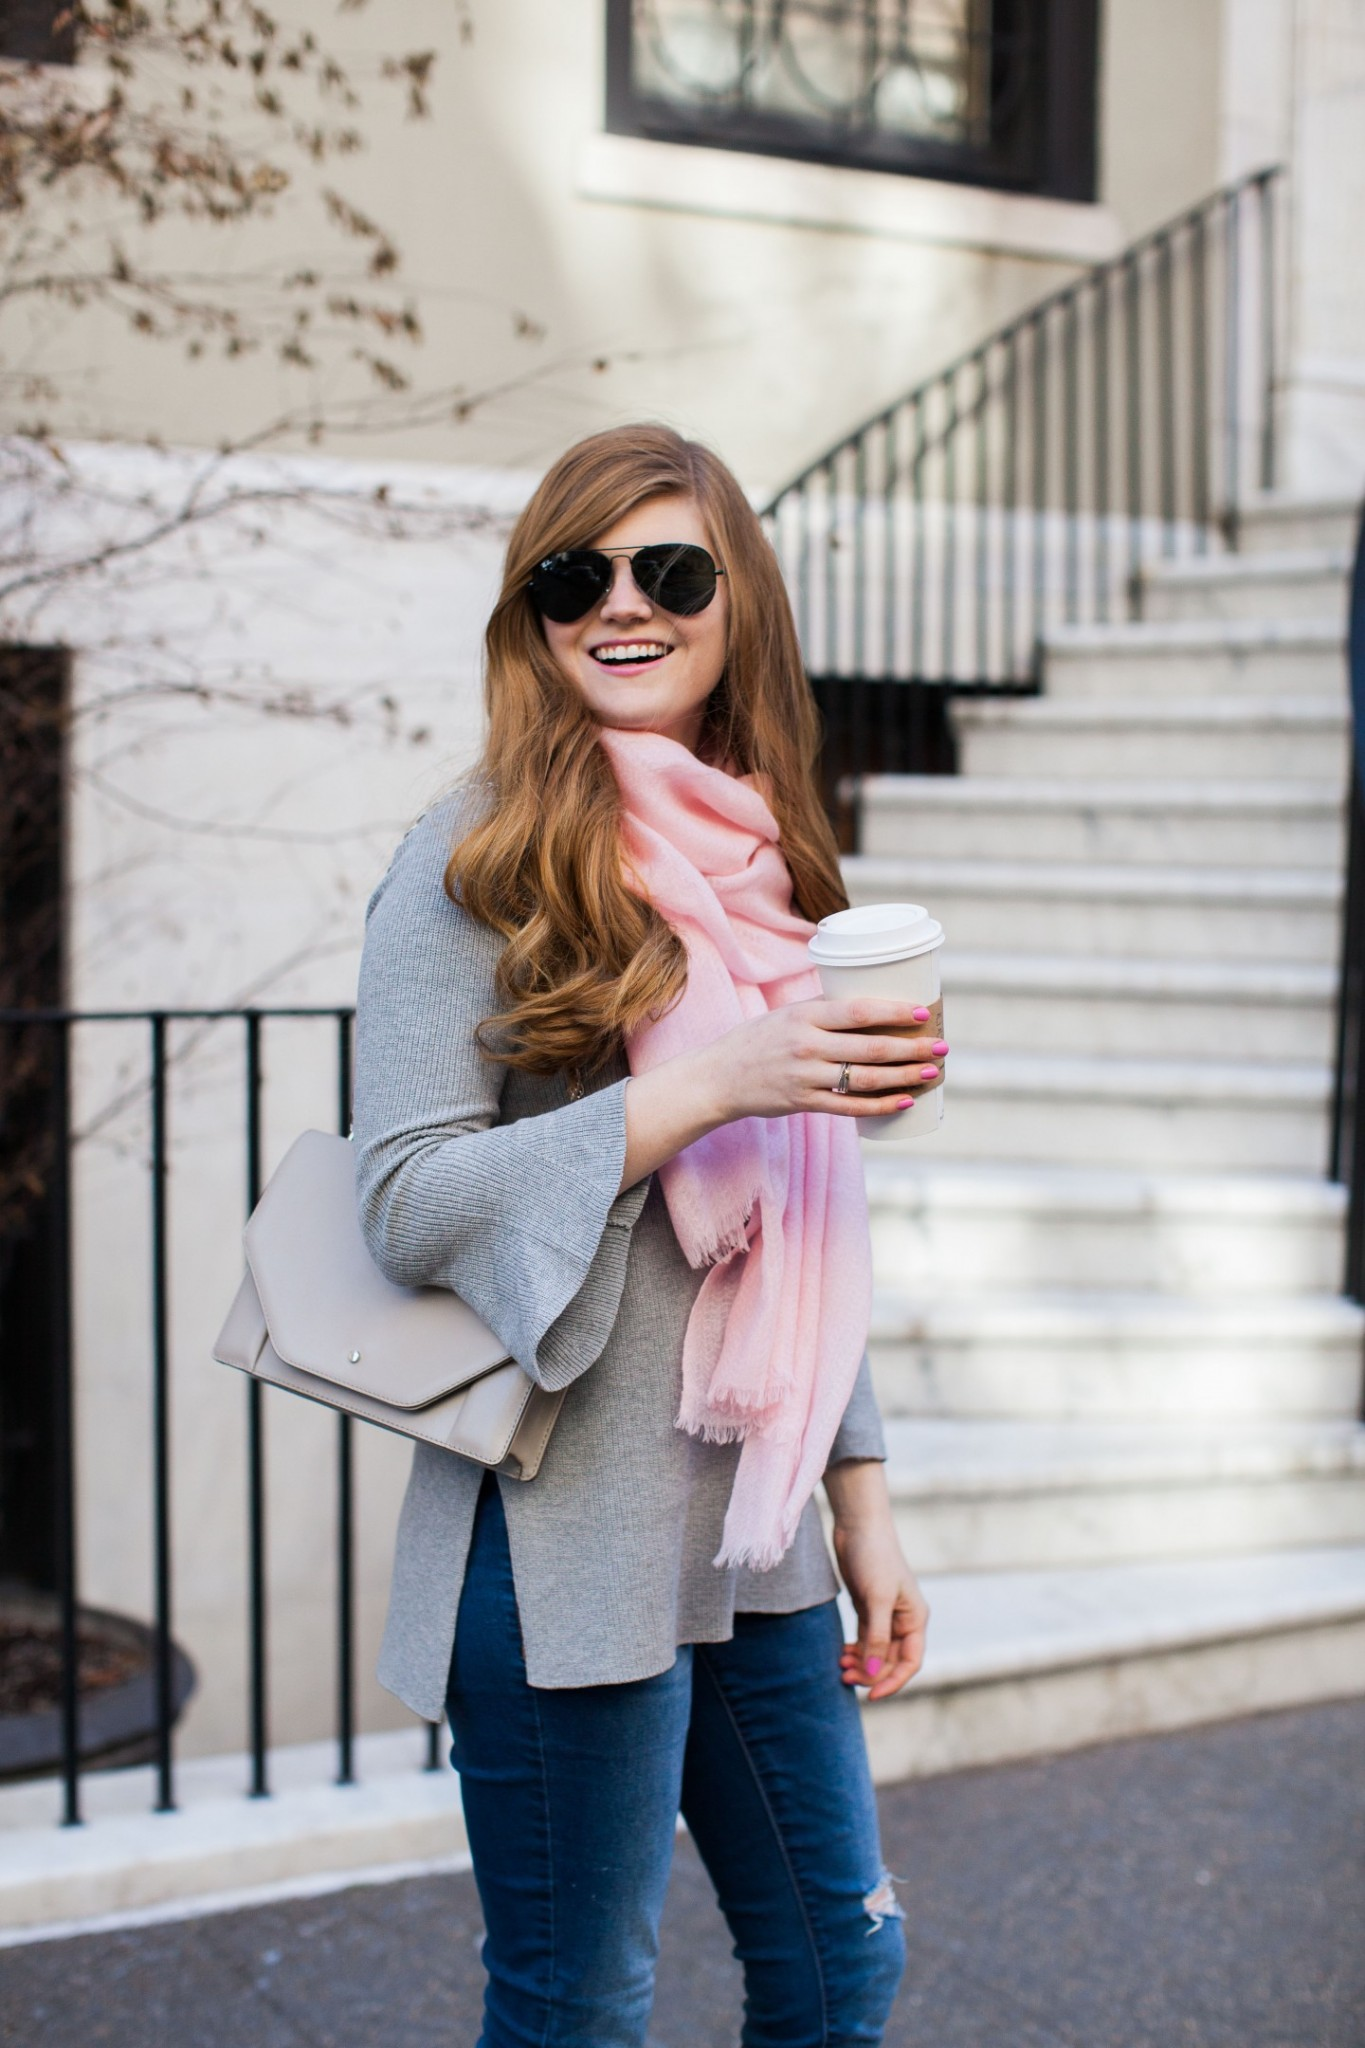 Lifestyle blogger Mollie Sheperdson shares a blush and grey spring look